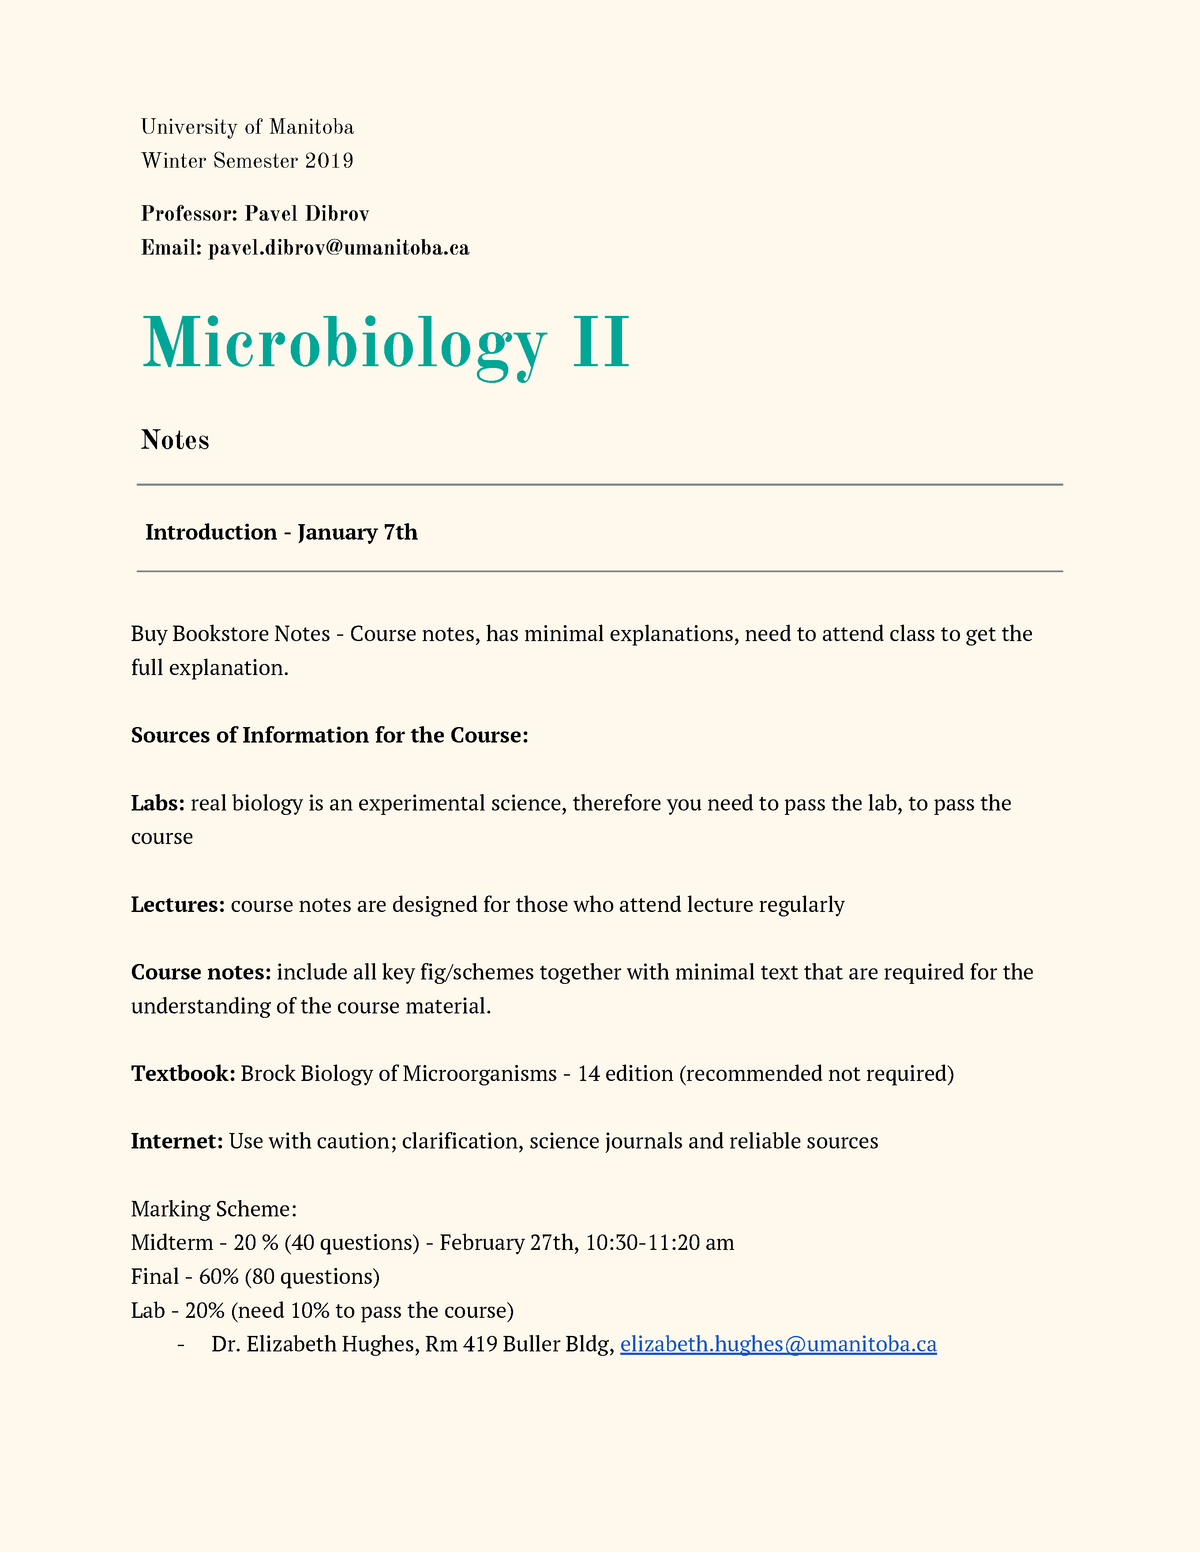 principles of microbiology lecture notes